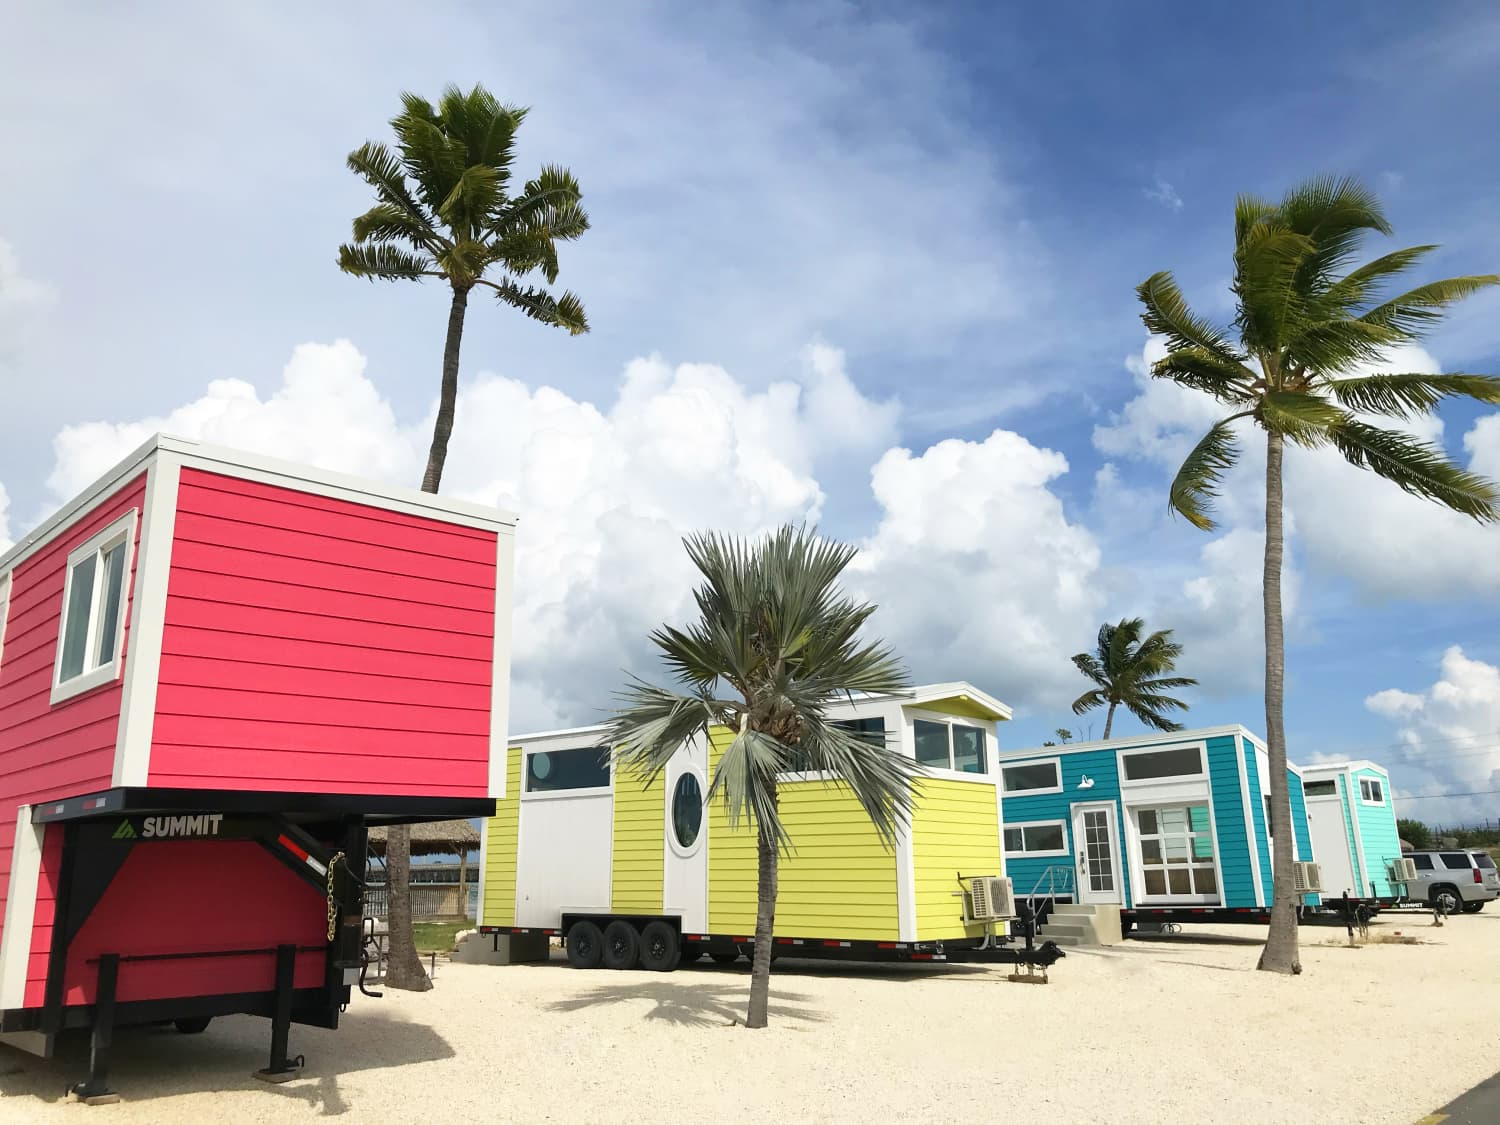 A New Tiny House Village Just Opened in the Florida Keys, So It's Time to Book a Vacation